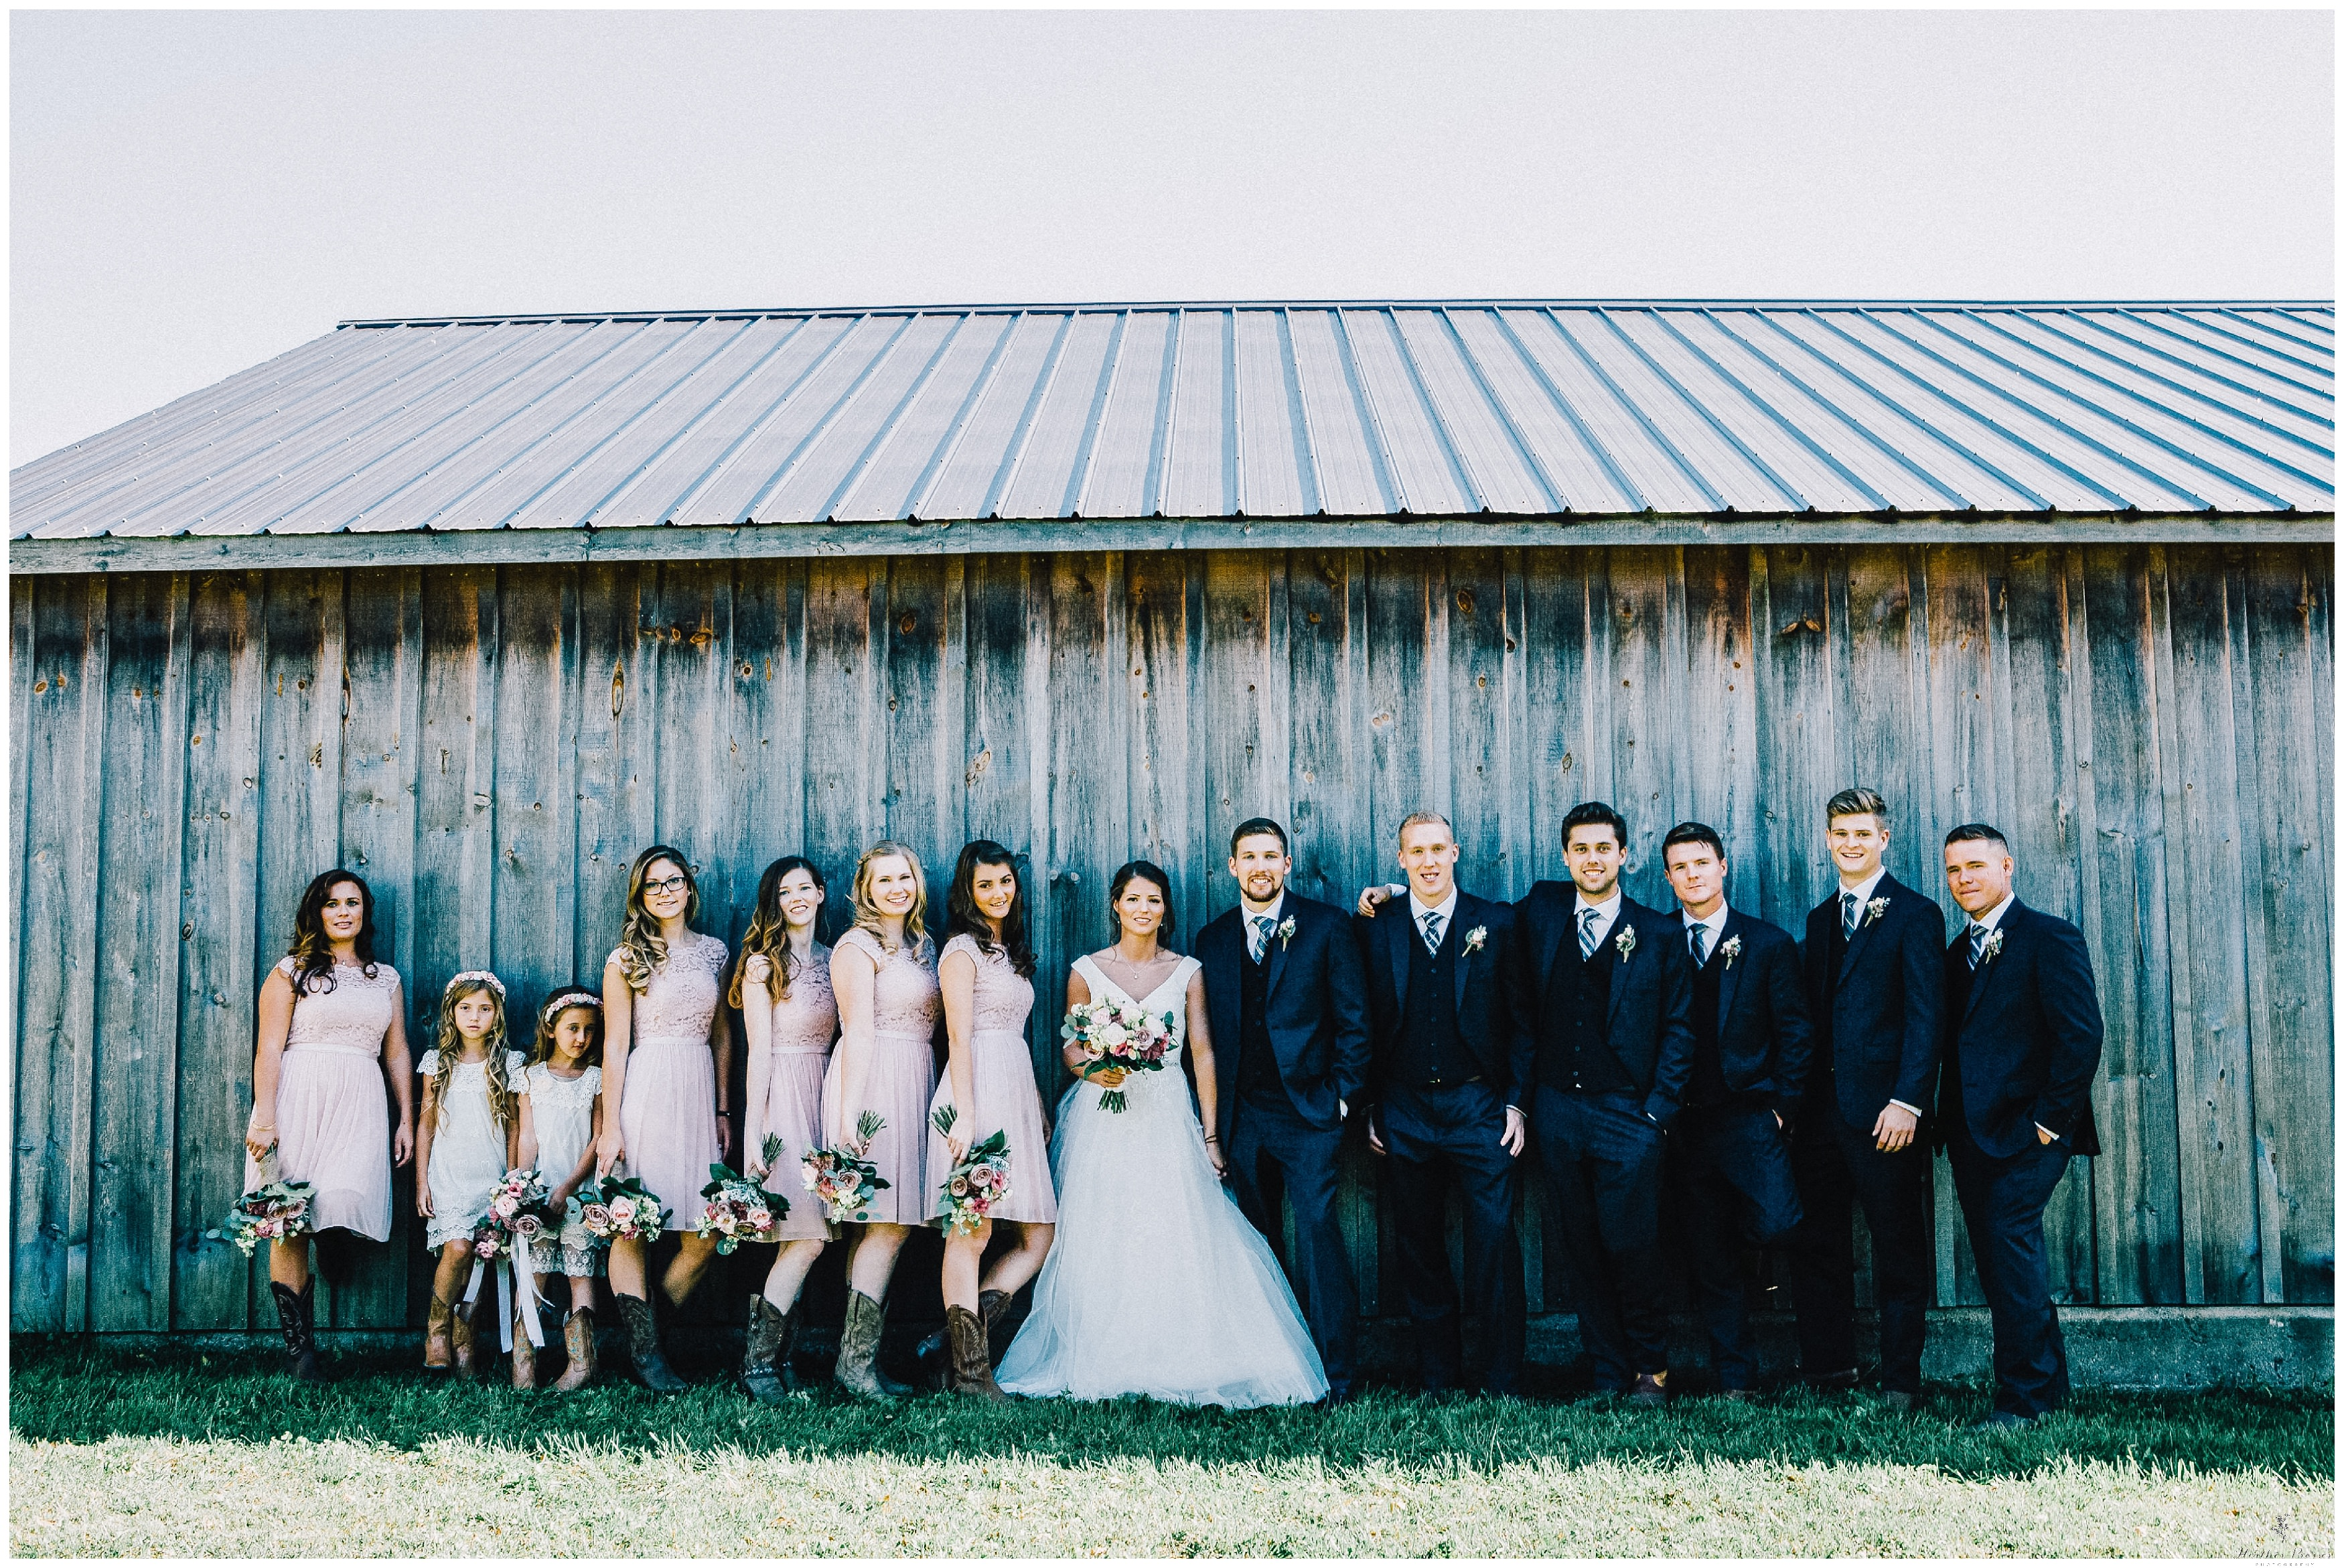 Ontario Barn Wedding_2189.jpg